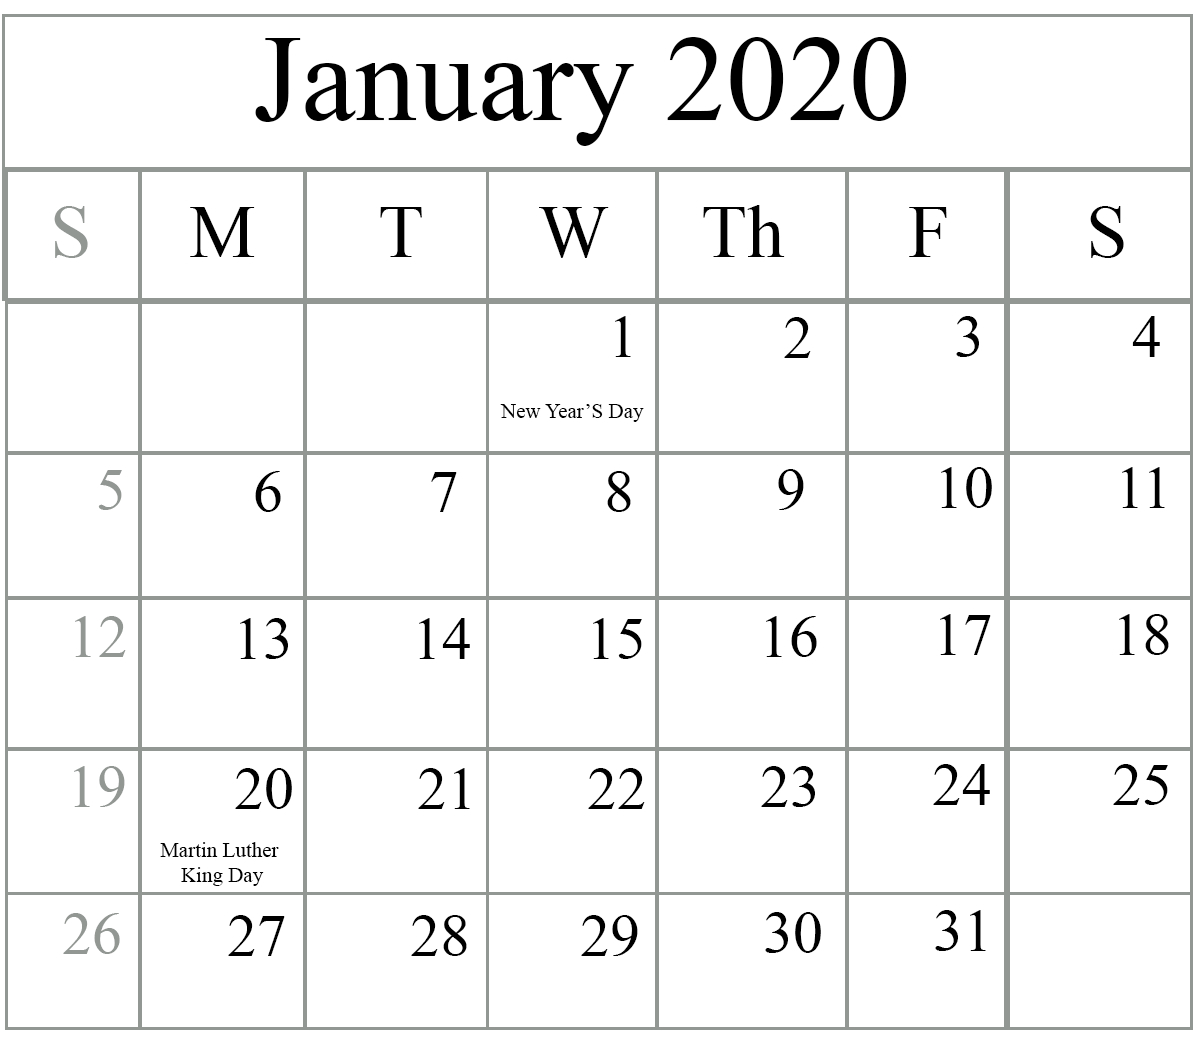 January 2020 Printable Calendar | Printable March Calendar